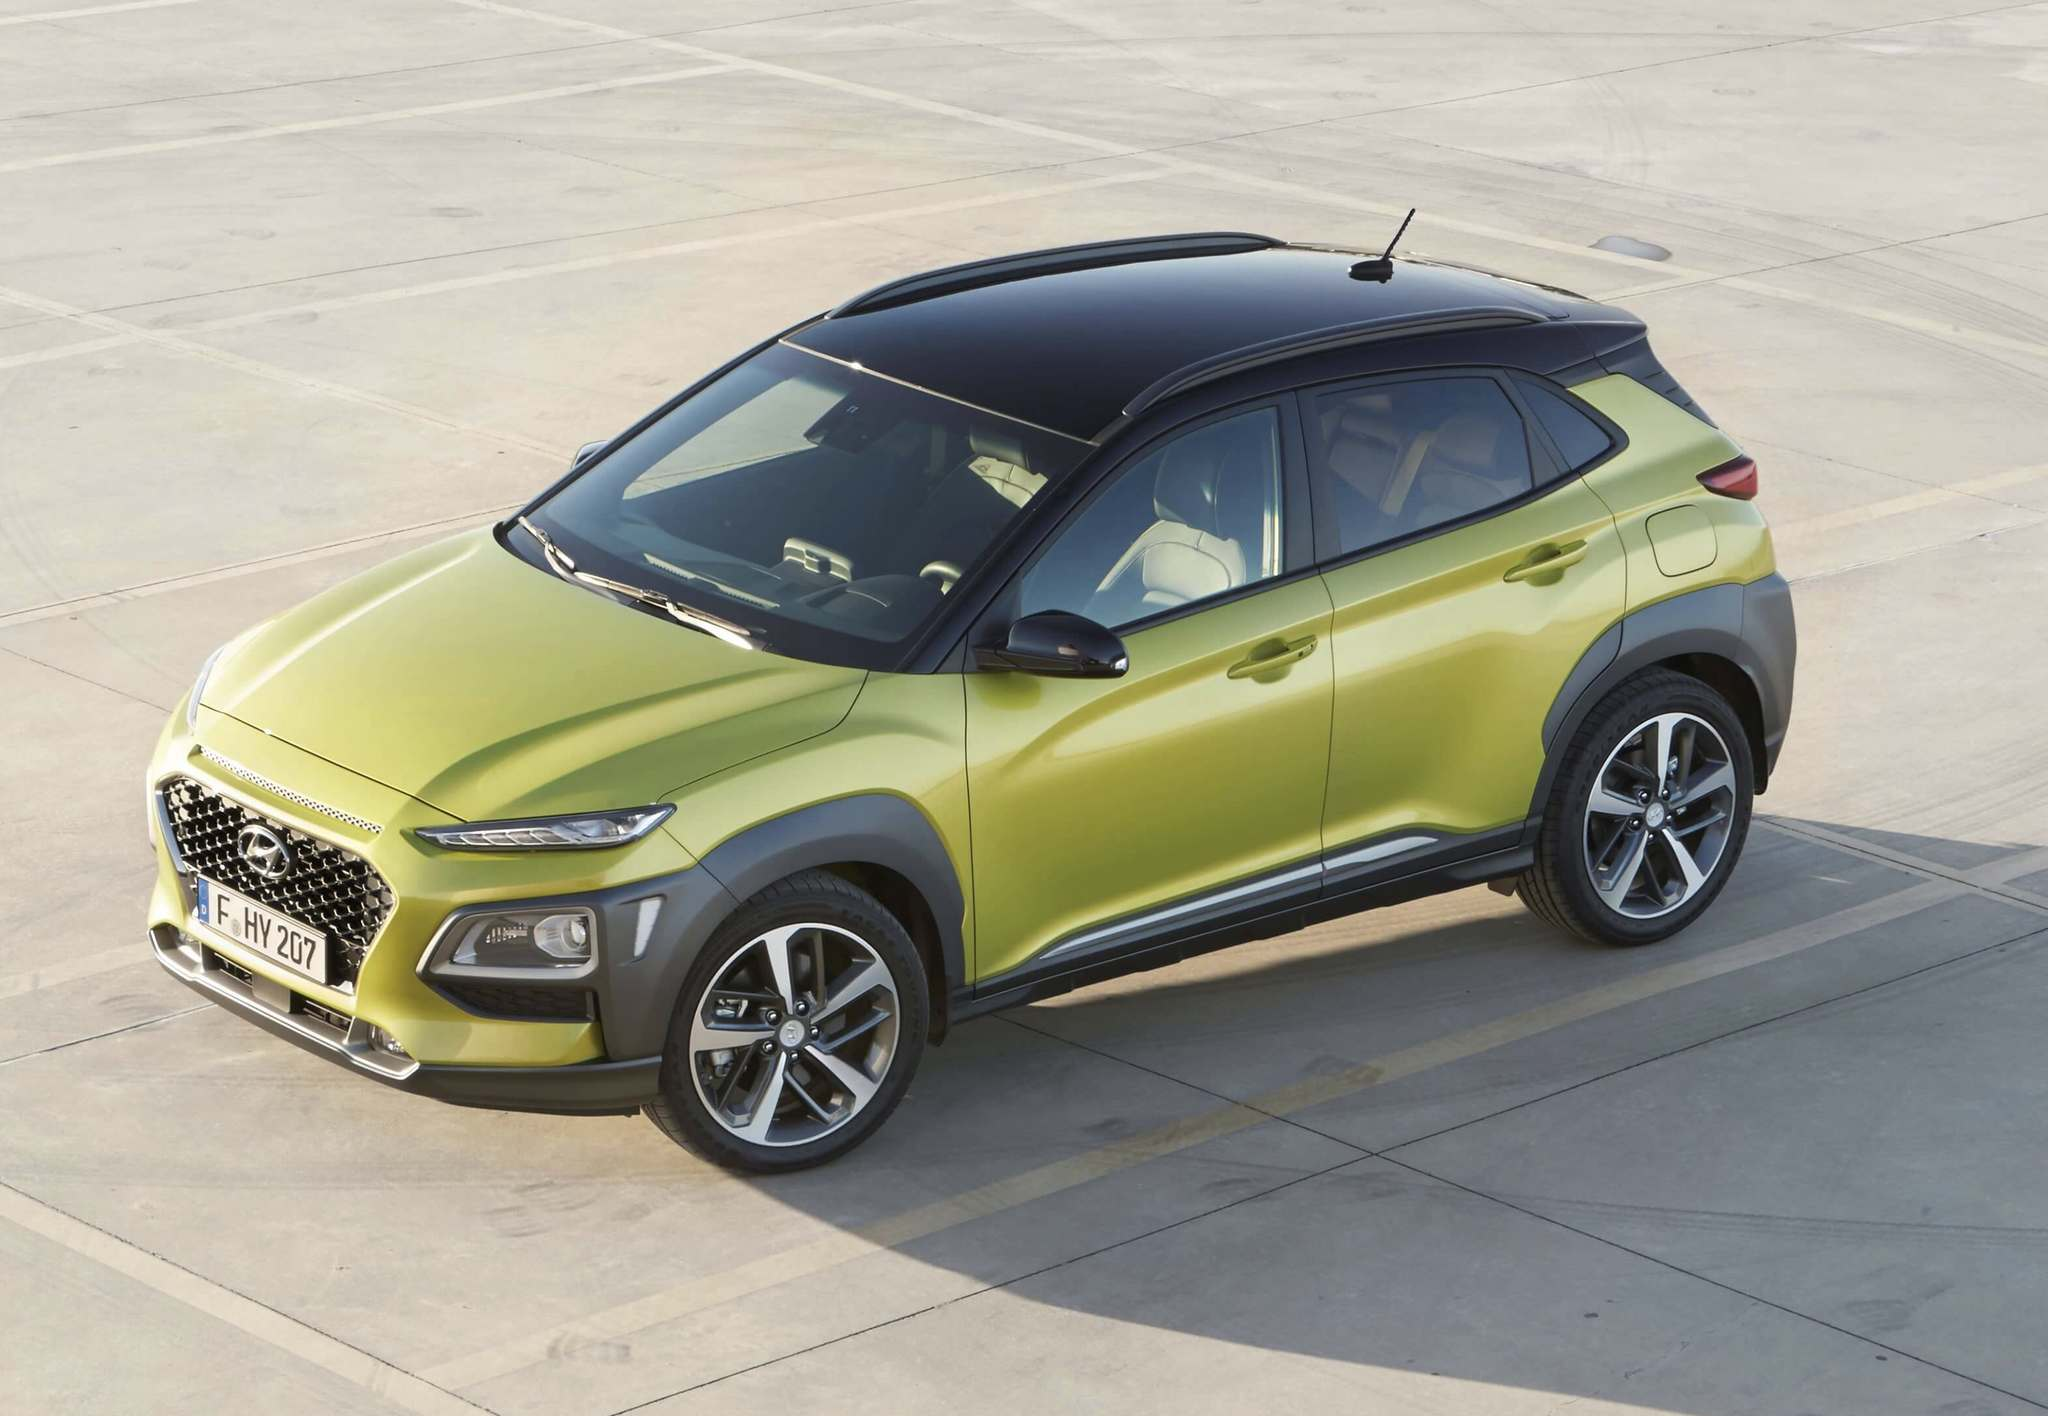 Hyundai Canada The new Kona, available now and generating excitement at Manitoba dealerships, comes with two engines and four trims to choose from.